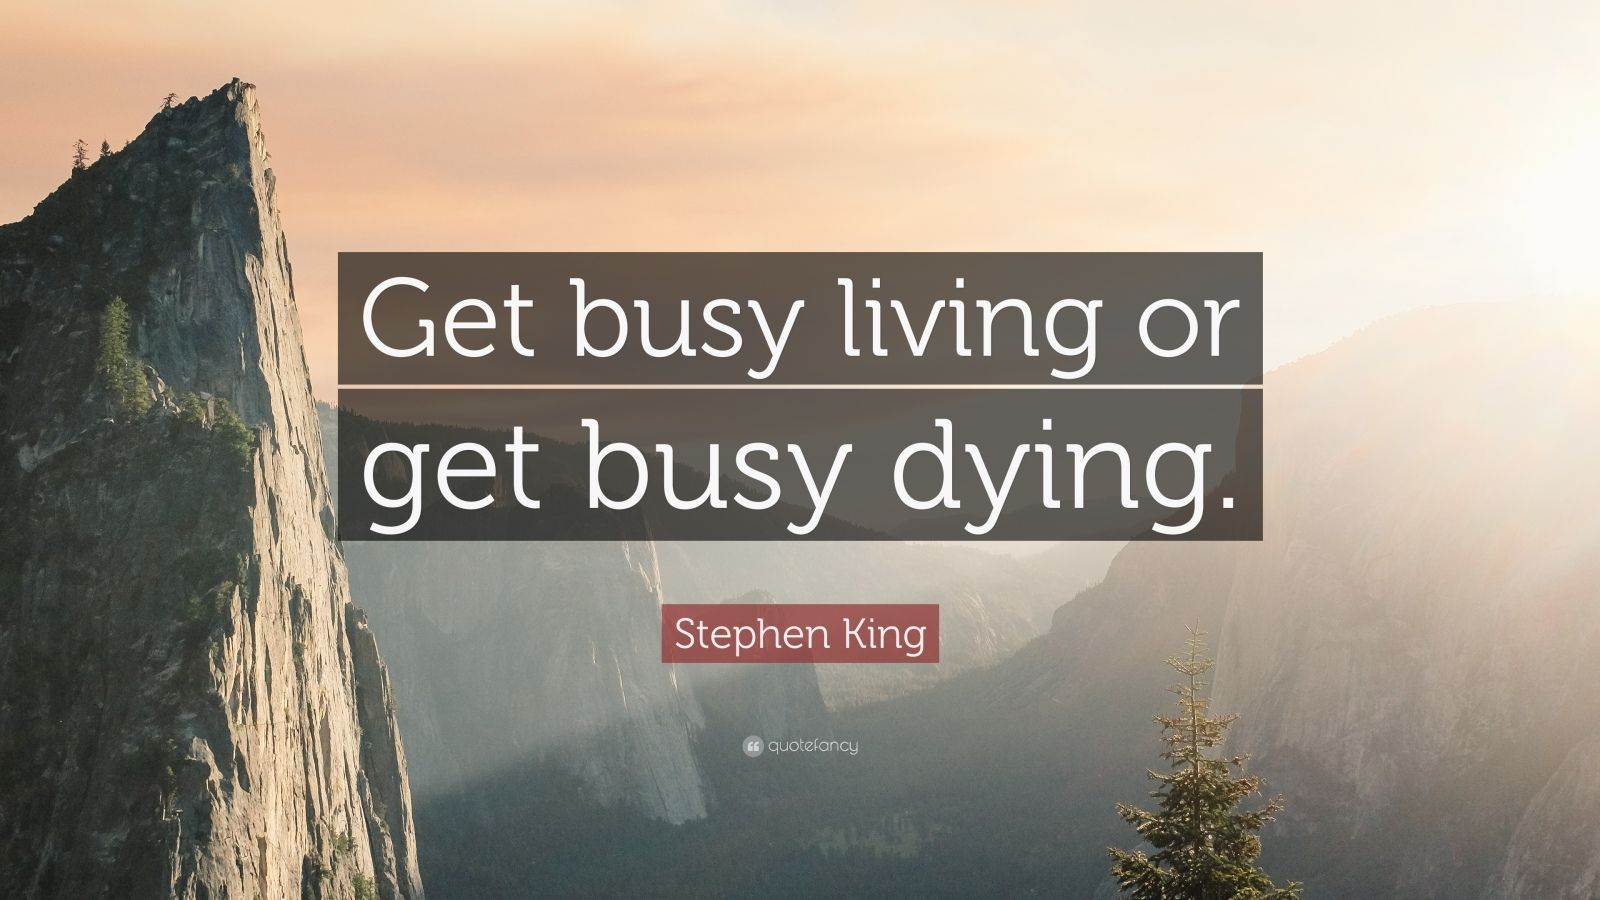 Ernest Hemingway Quote Wallpaper Stephen King Quote Get Busy Living Or Get Busy Dying